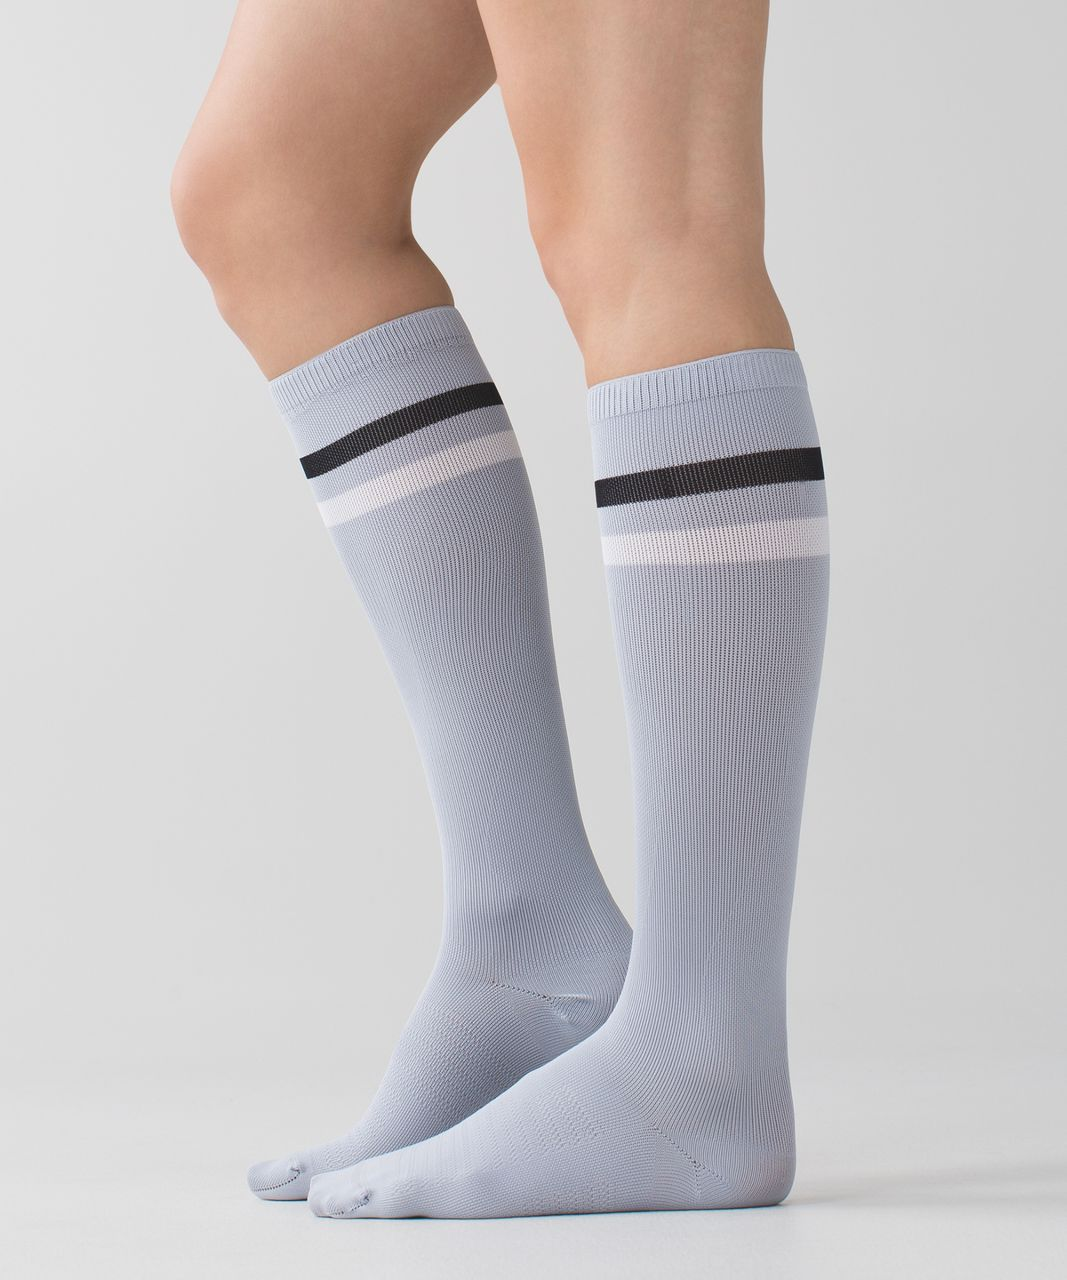 Lululemon Women's Keep It Tight Sock - Varsity Stripe Silver Fox White Black